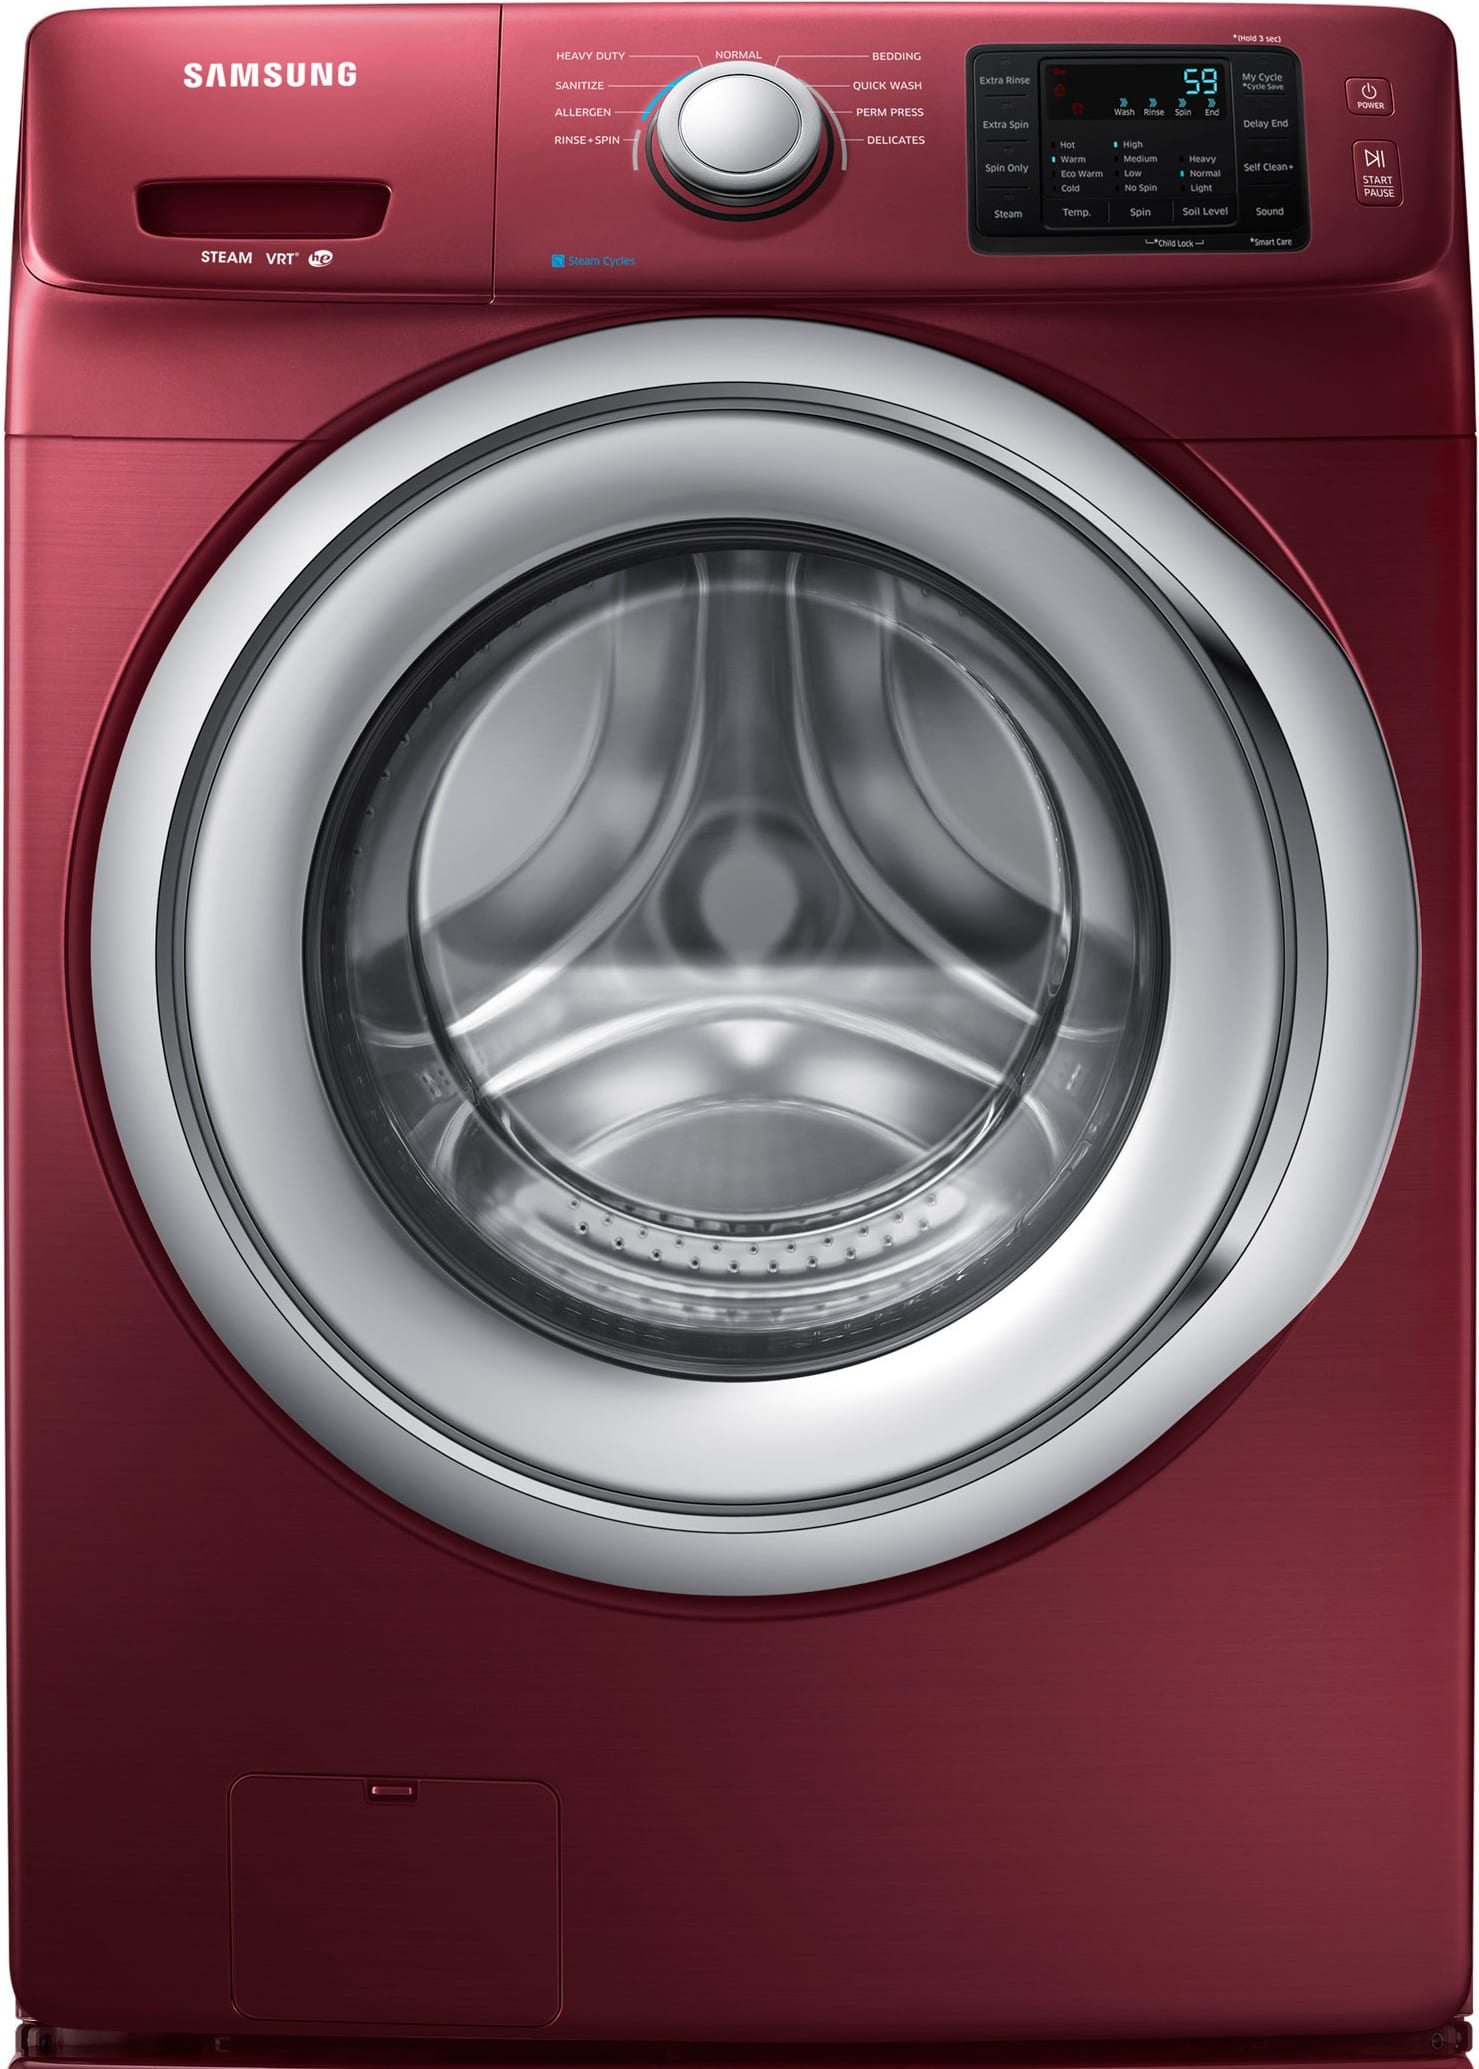 Samsung Wf42h5200af 27 Inch 42 Cu Ft Front Load Washer With Steam Together Electric Clothes Dryer Additionally Maytag Wash Nsf Certified Self Clean Allergen Cycle Sanitize 9 Cycles